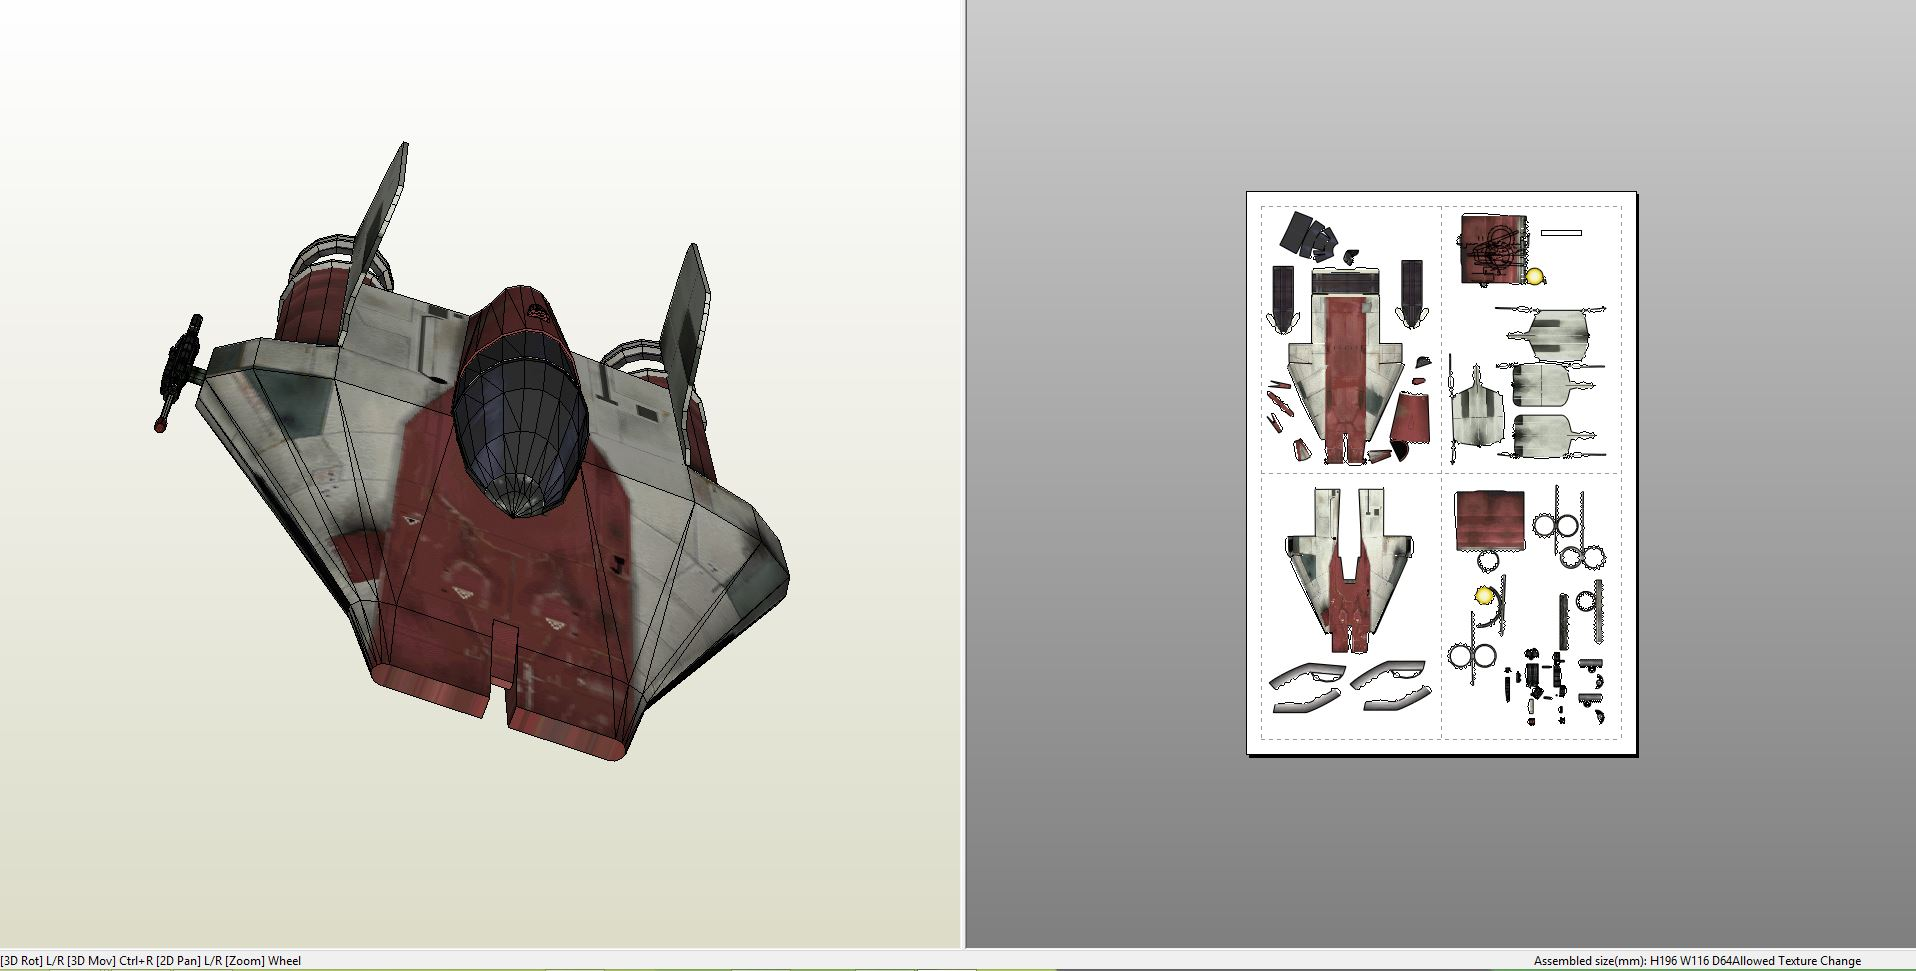 papercraft pdo file template for star wars a wing star fighter. Black Bedroom Furniture Sets. Home Design Ideas